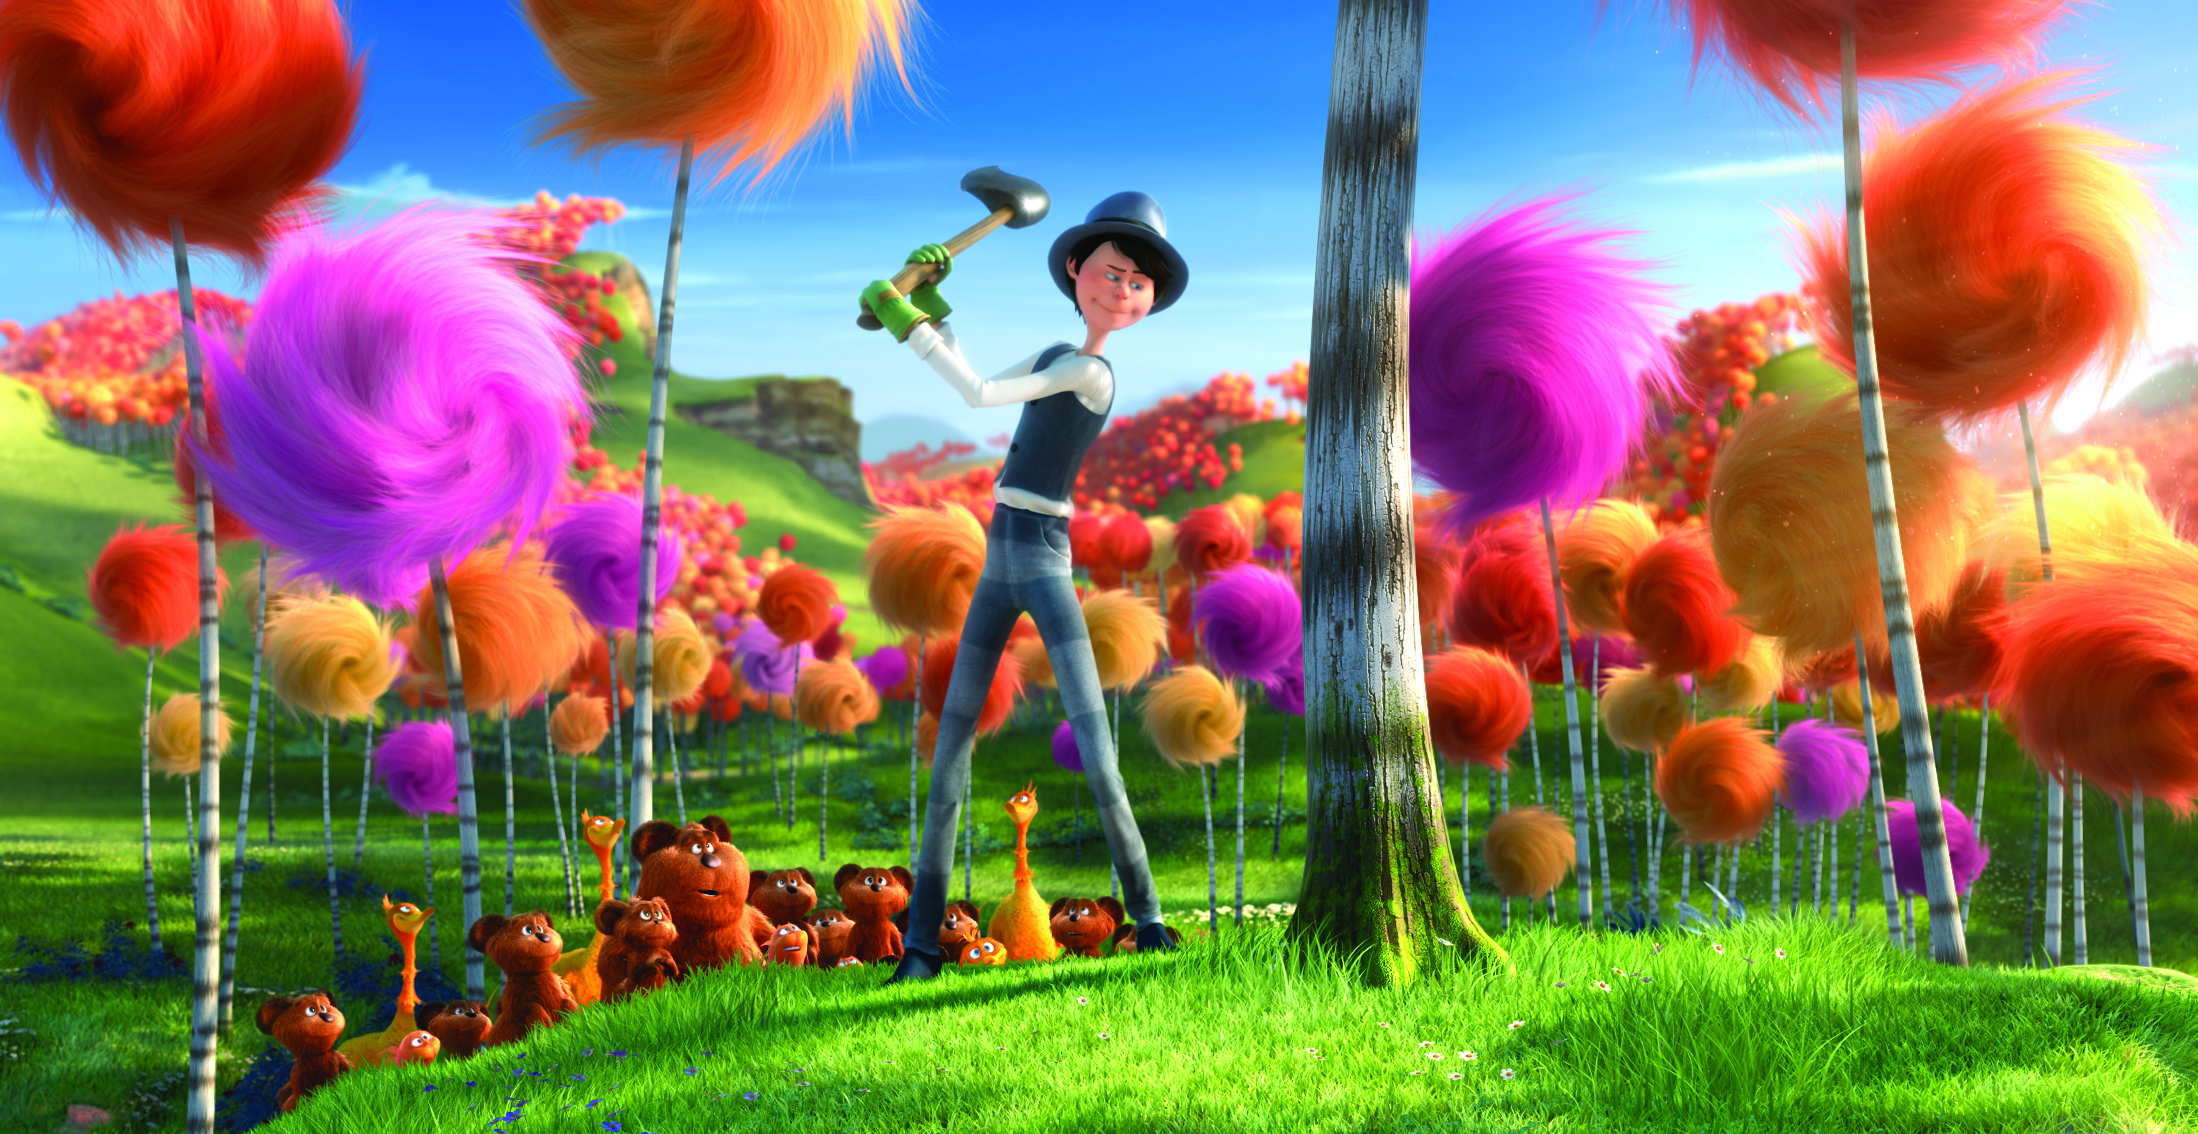 Lessons from The Lorax: 3 Ways Your Family Can Protect the Earth